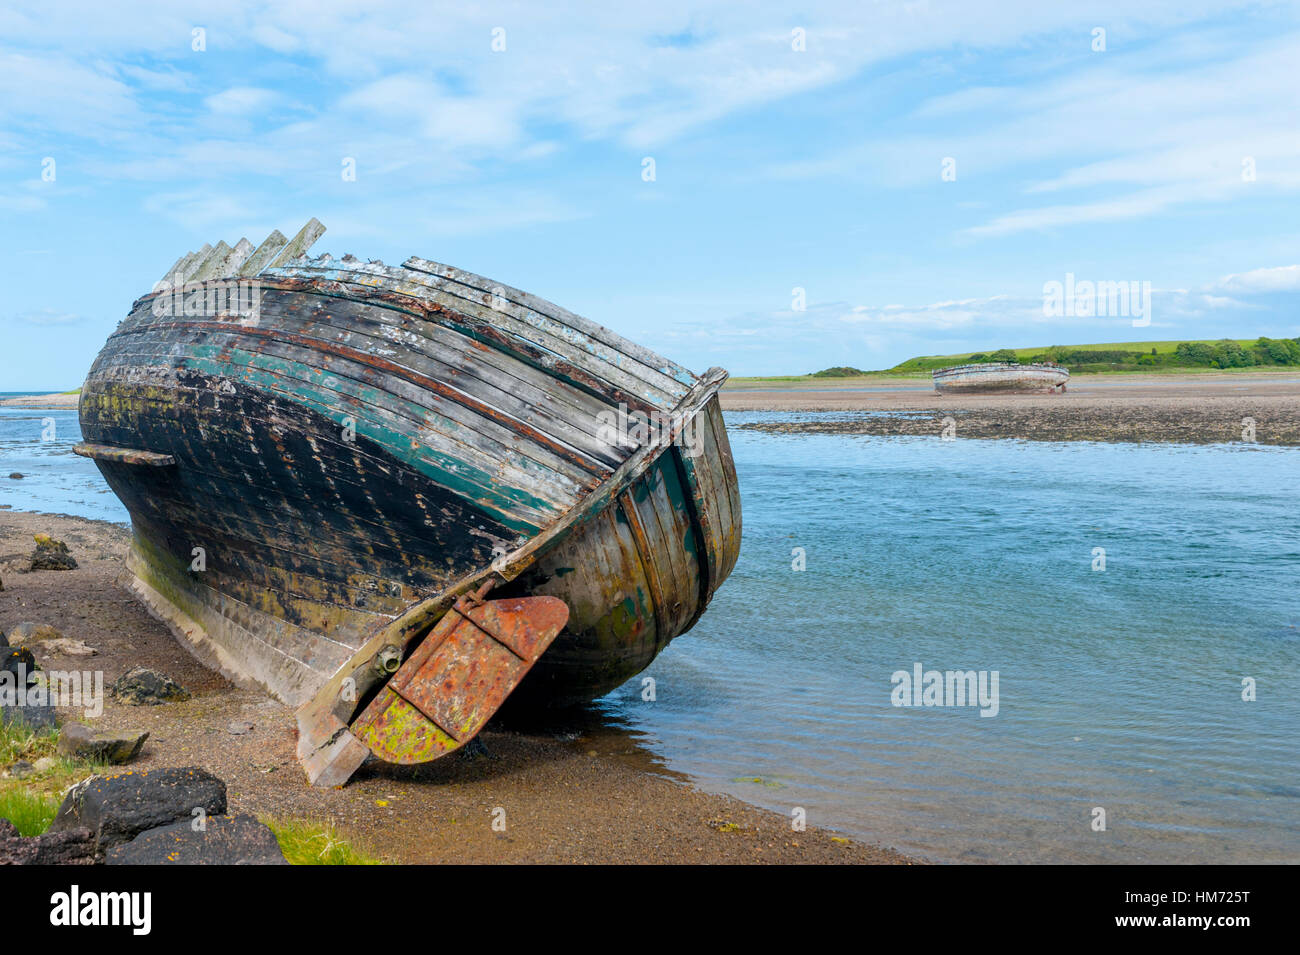 Wrecked boats aground on mud banks at Treath Dulas, Anglesey, Wales - Stock Image